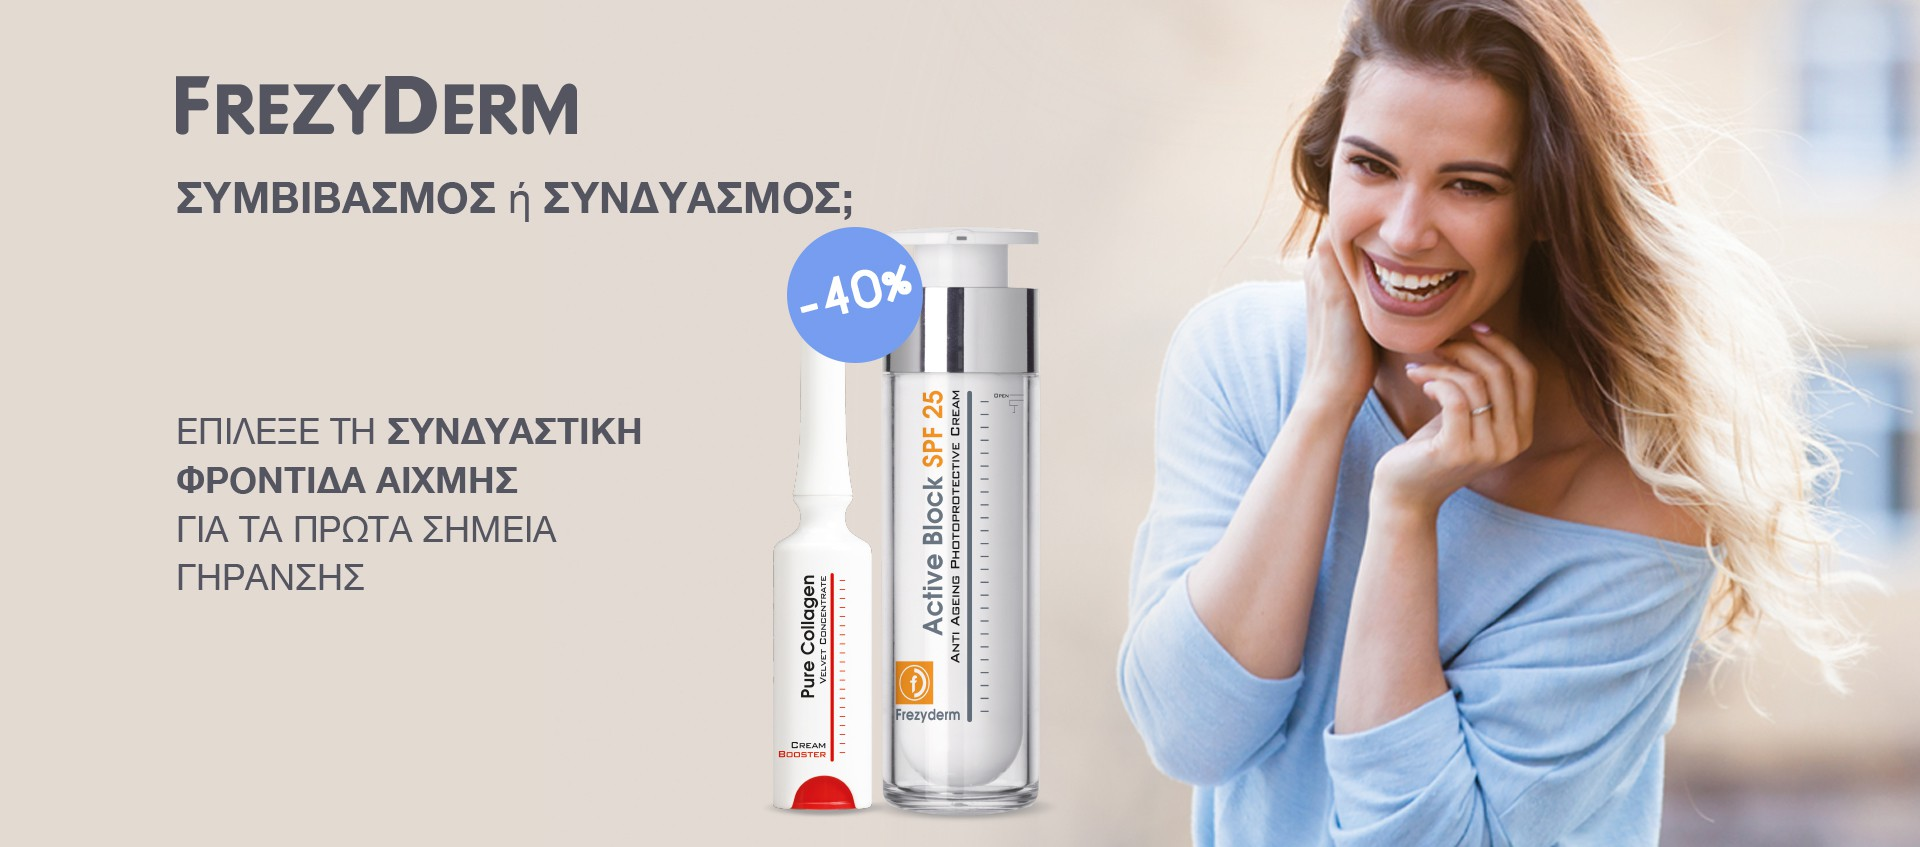 Frezyderm antiaging boosters farmakeio express